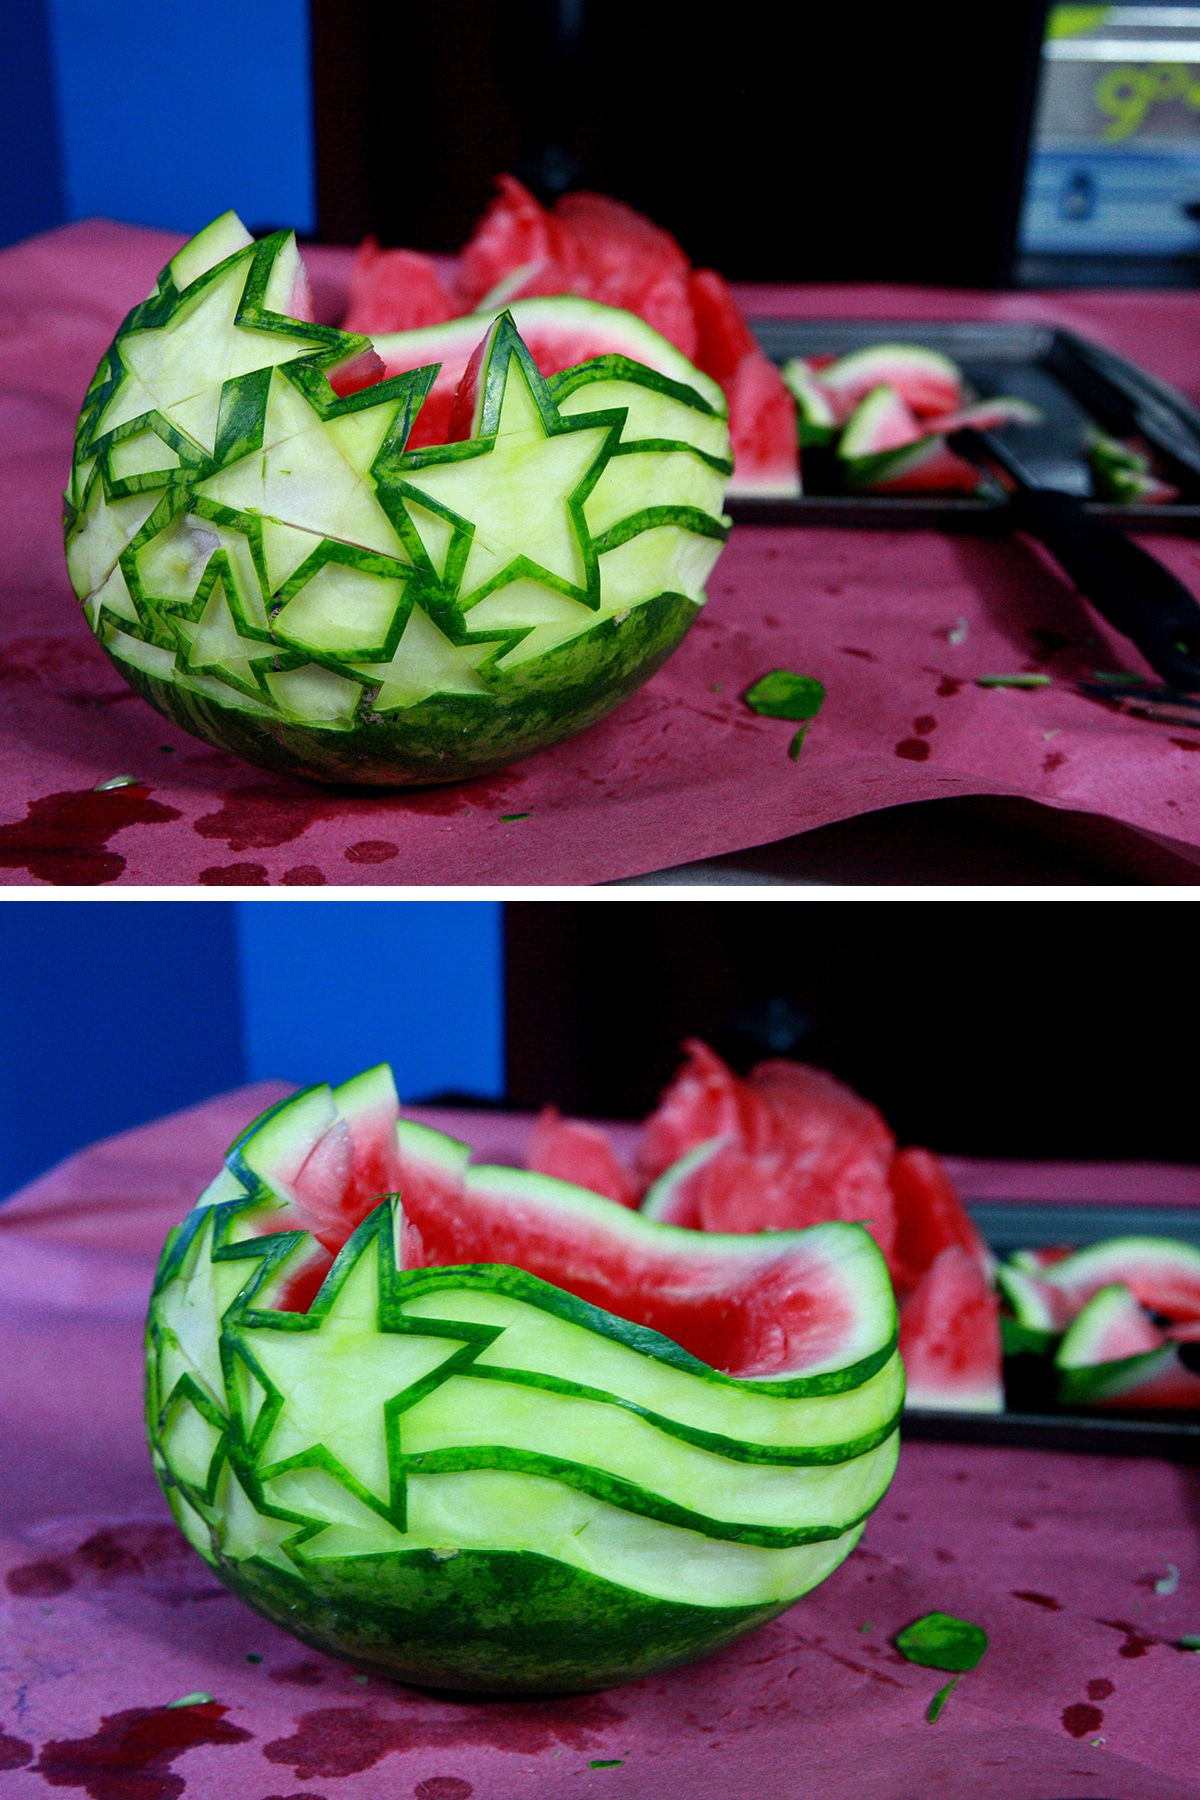 A two part image showing the watermelon with the top edge cut to shape.